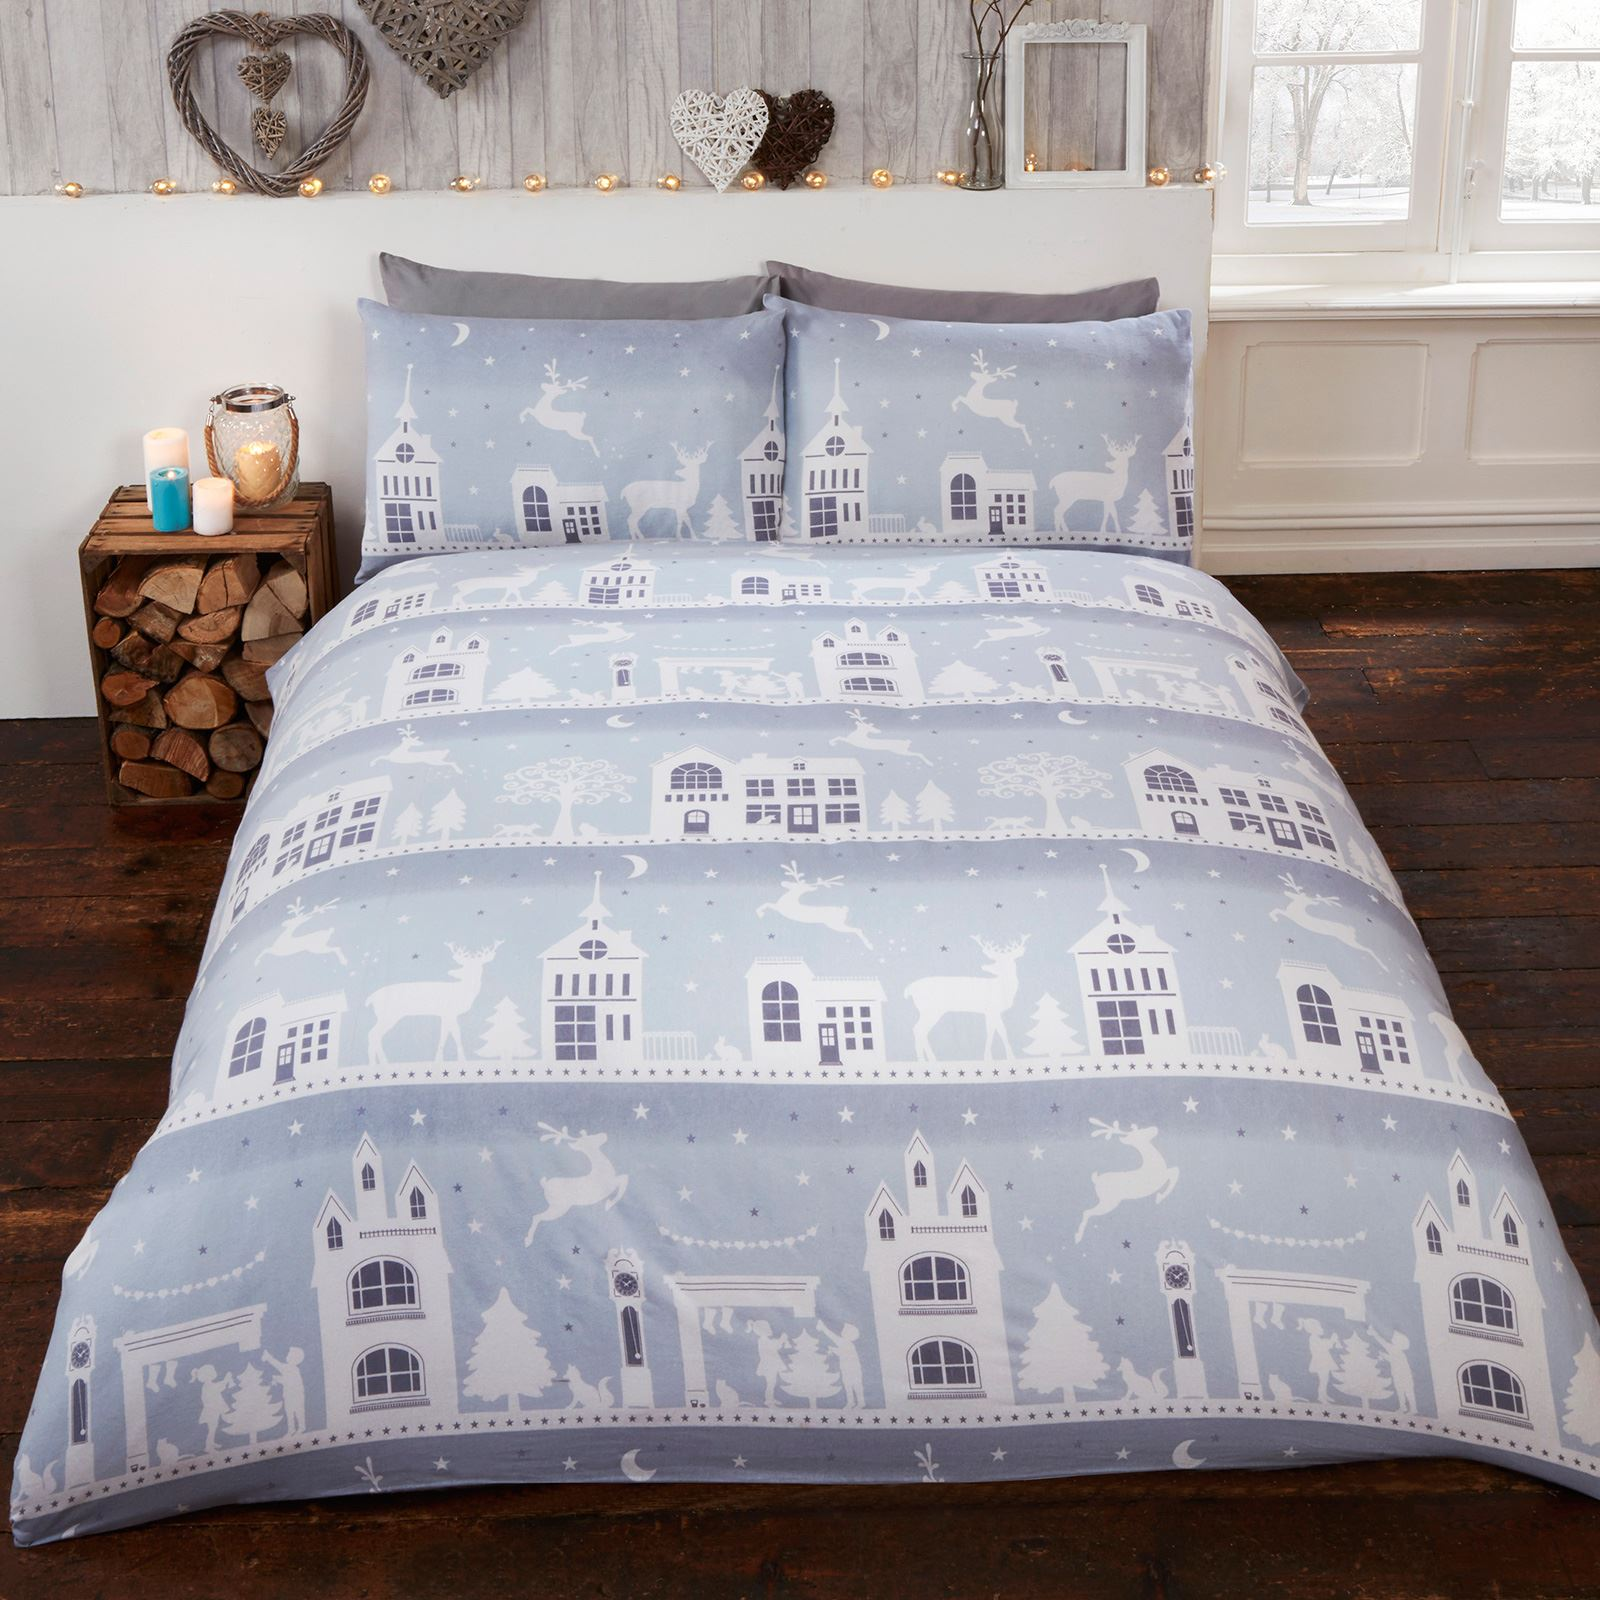 christmas festive duvet cover sets bedding adults single double king size ebay. Black Bedroom Furniture Sets. Home Design Ideas